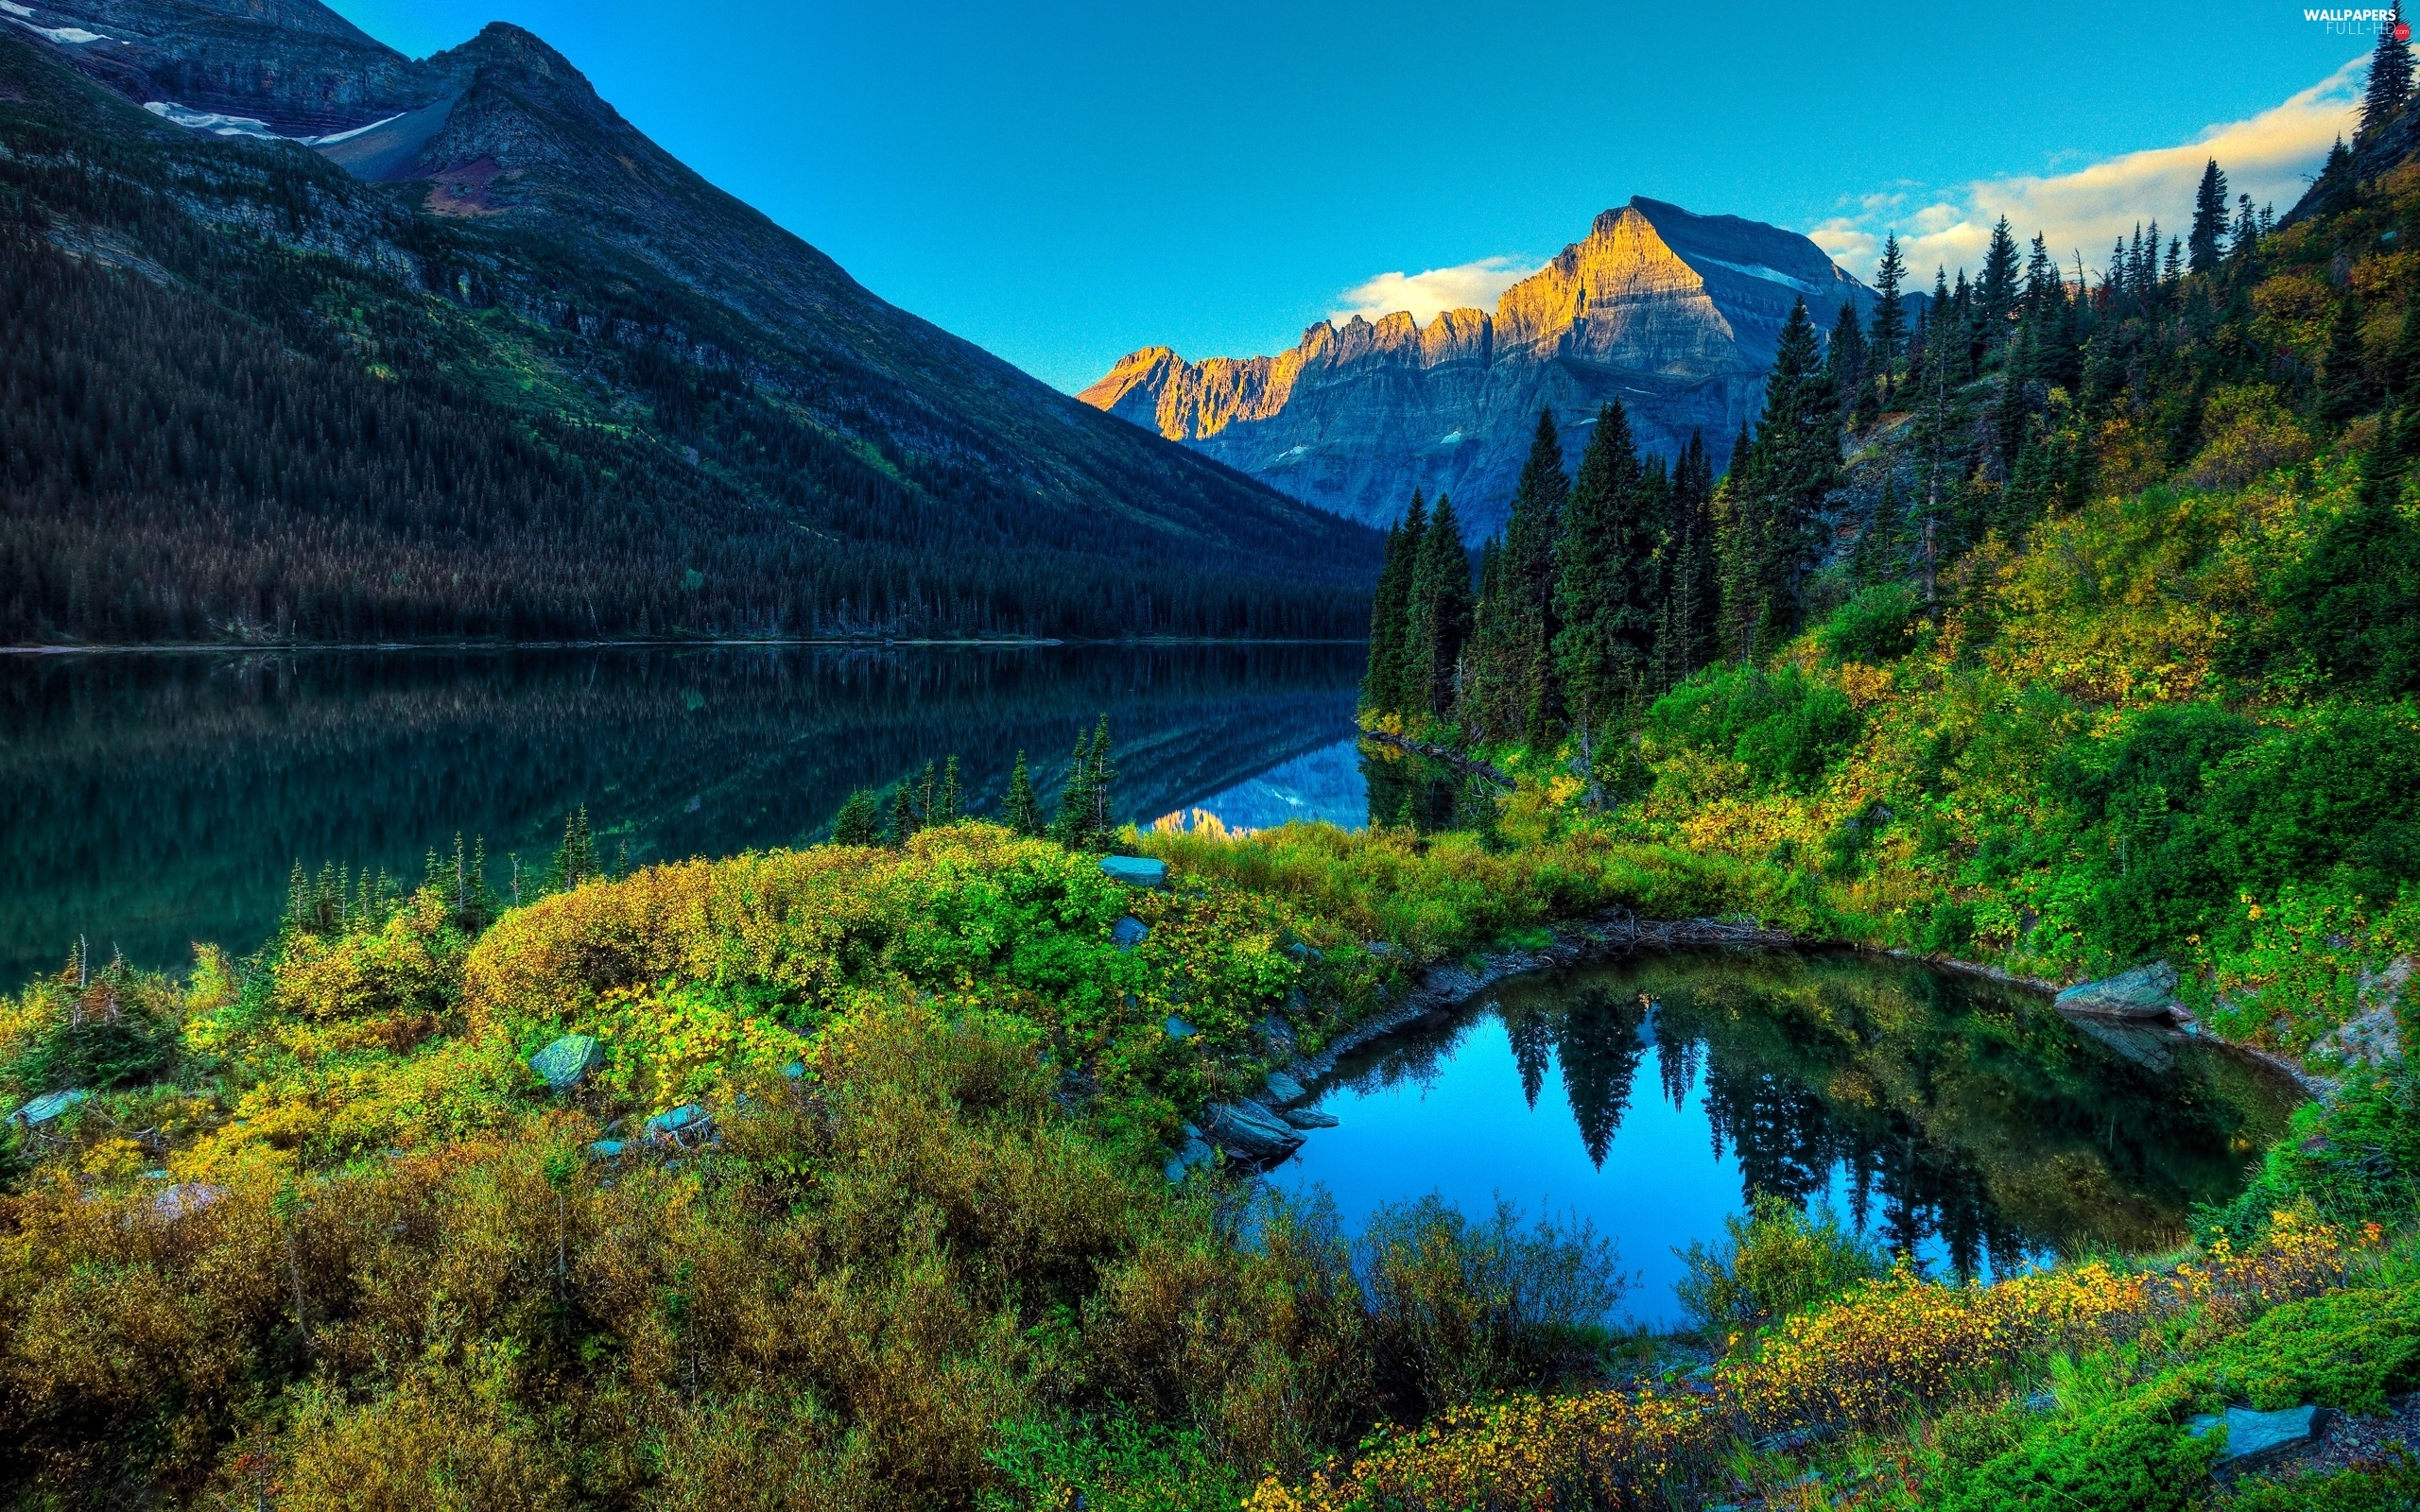 VEGETATION, Mountains, lake, forest